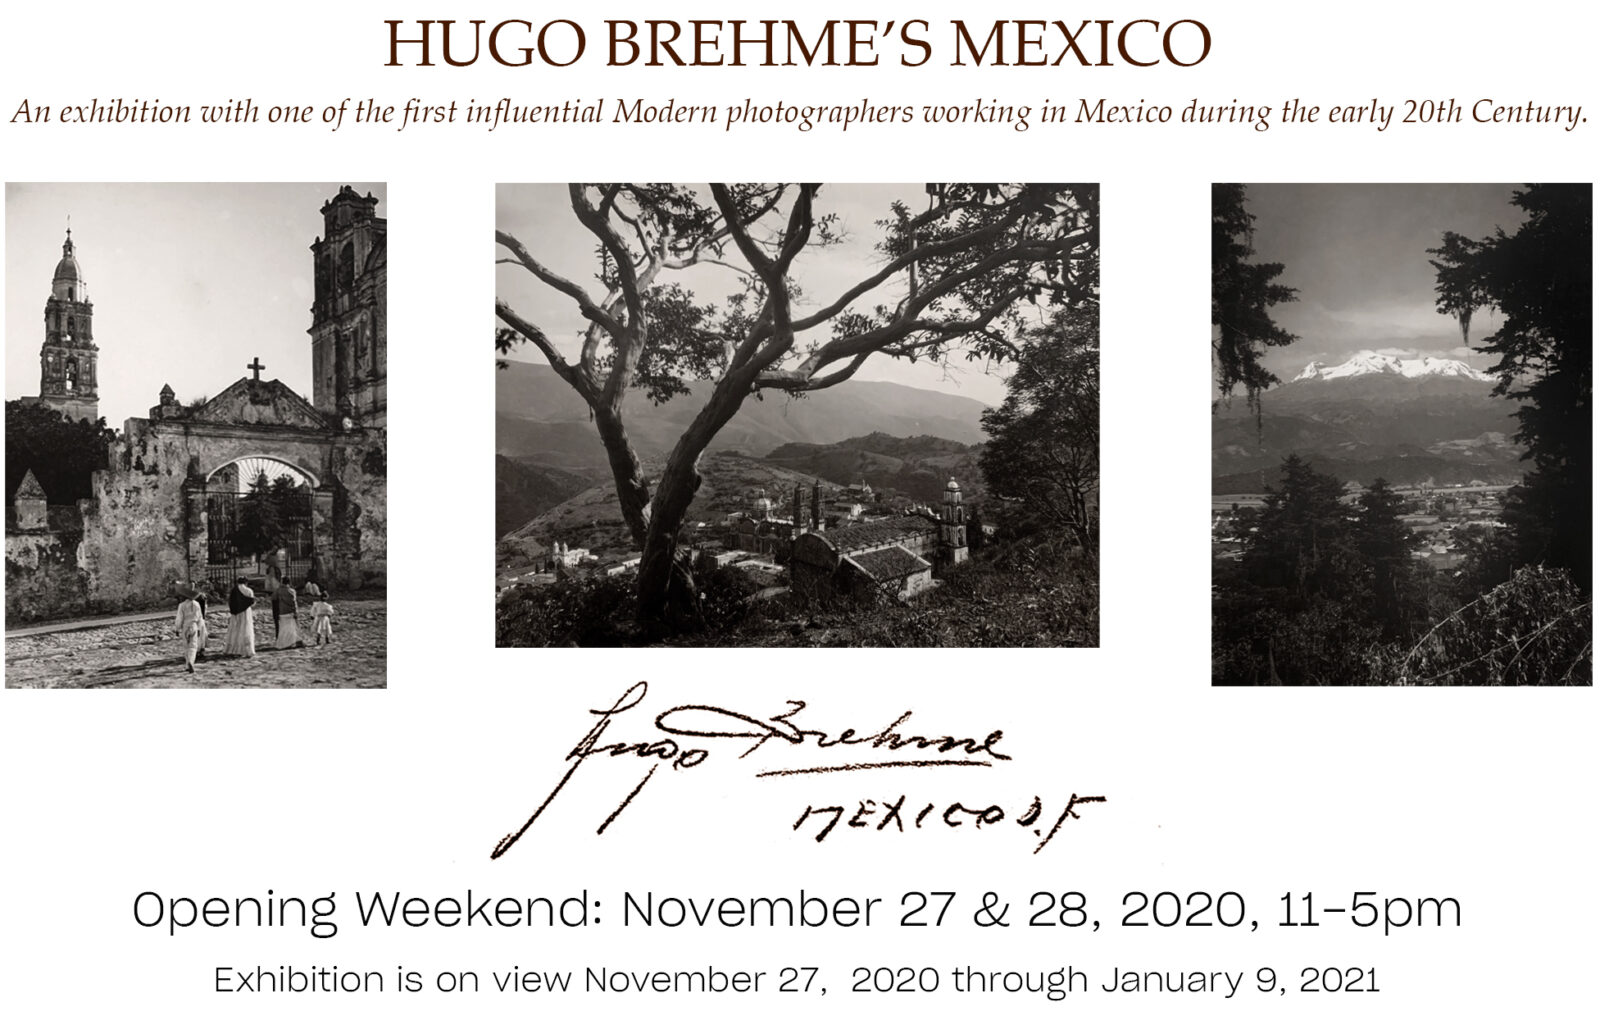 Hugo Brehme's Mexico, An exhibition with one of the first influential Modern photographers workin in Mexico during the early 20th century.